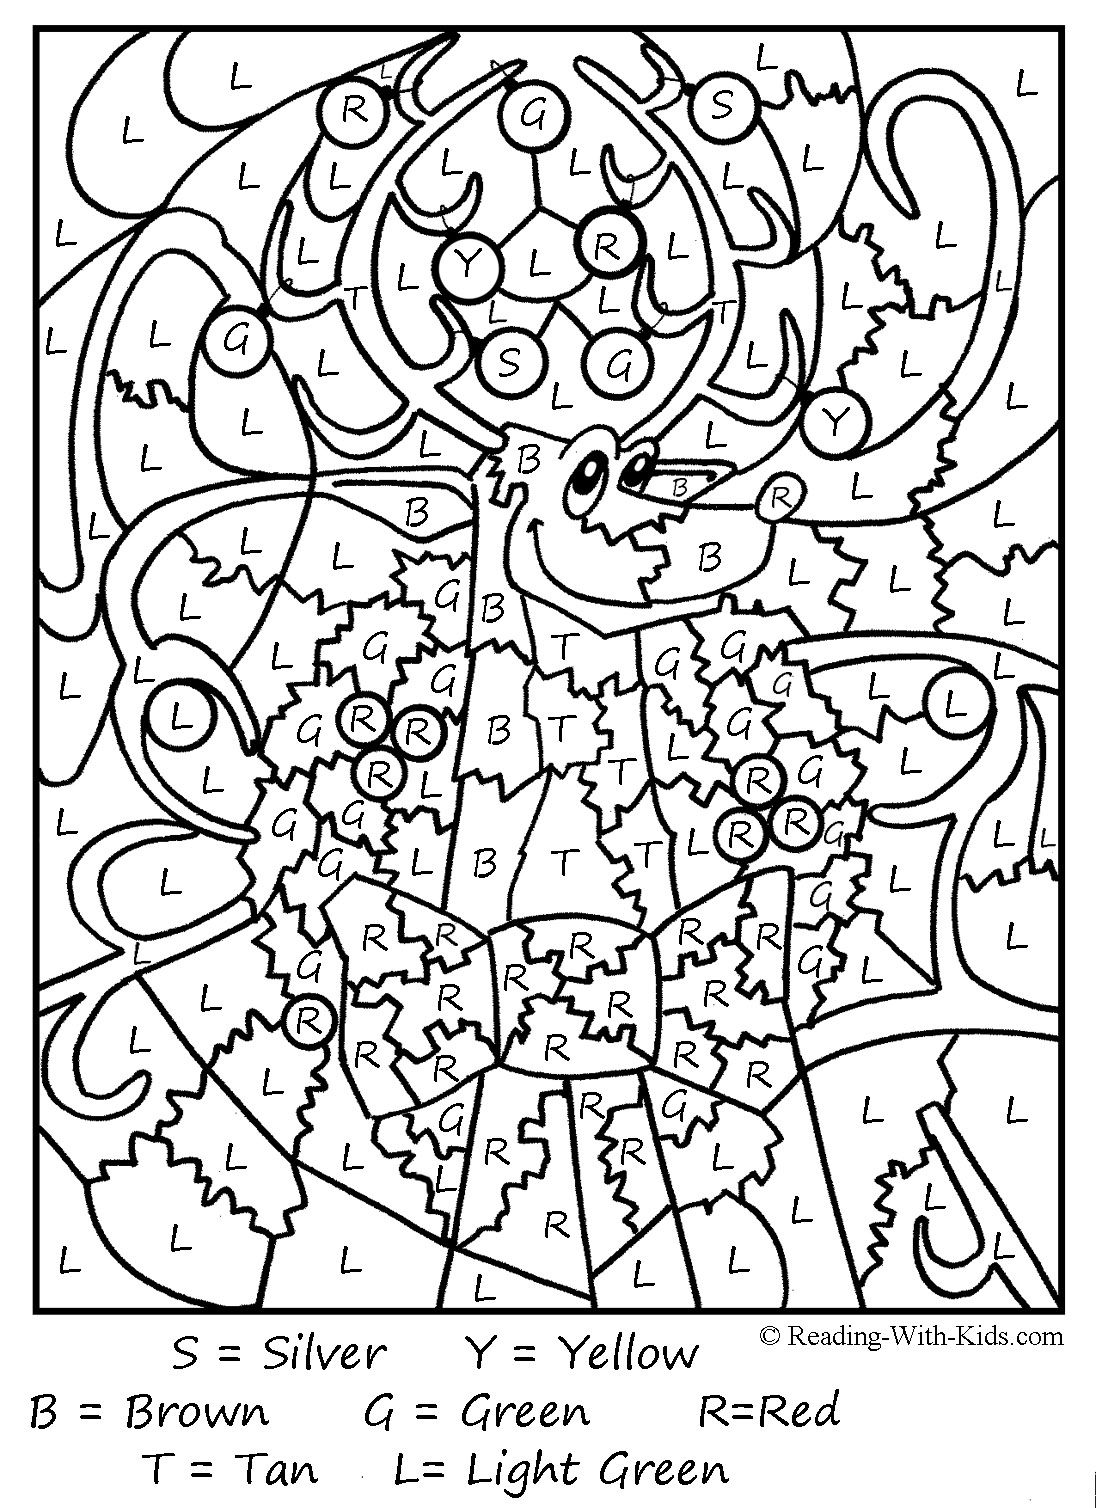 Free printable christmas coloring pages adults - Hard Christmas Coloring Pages For Adults Only Coloring Pages